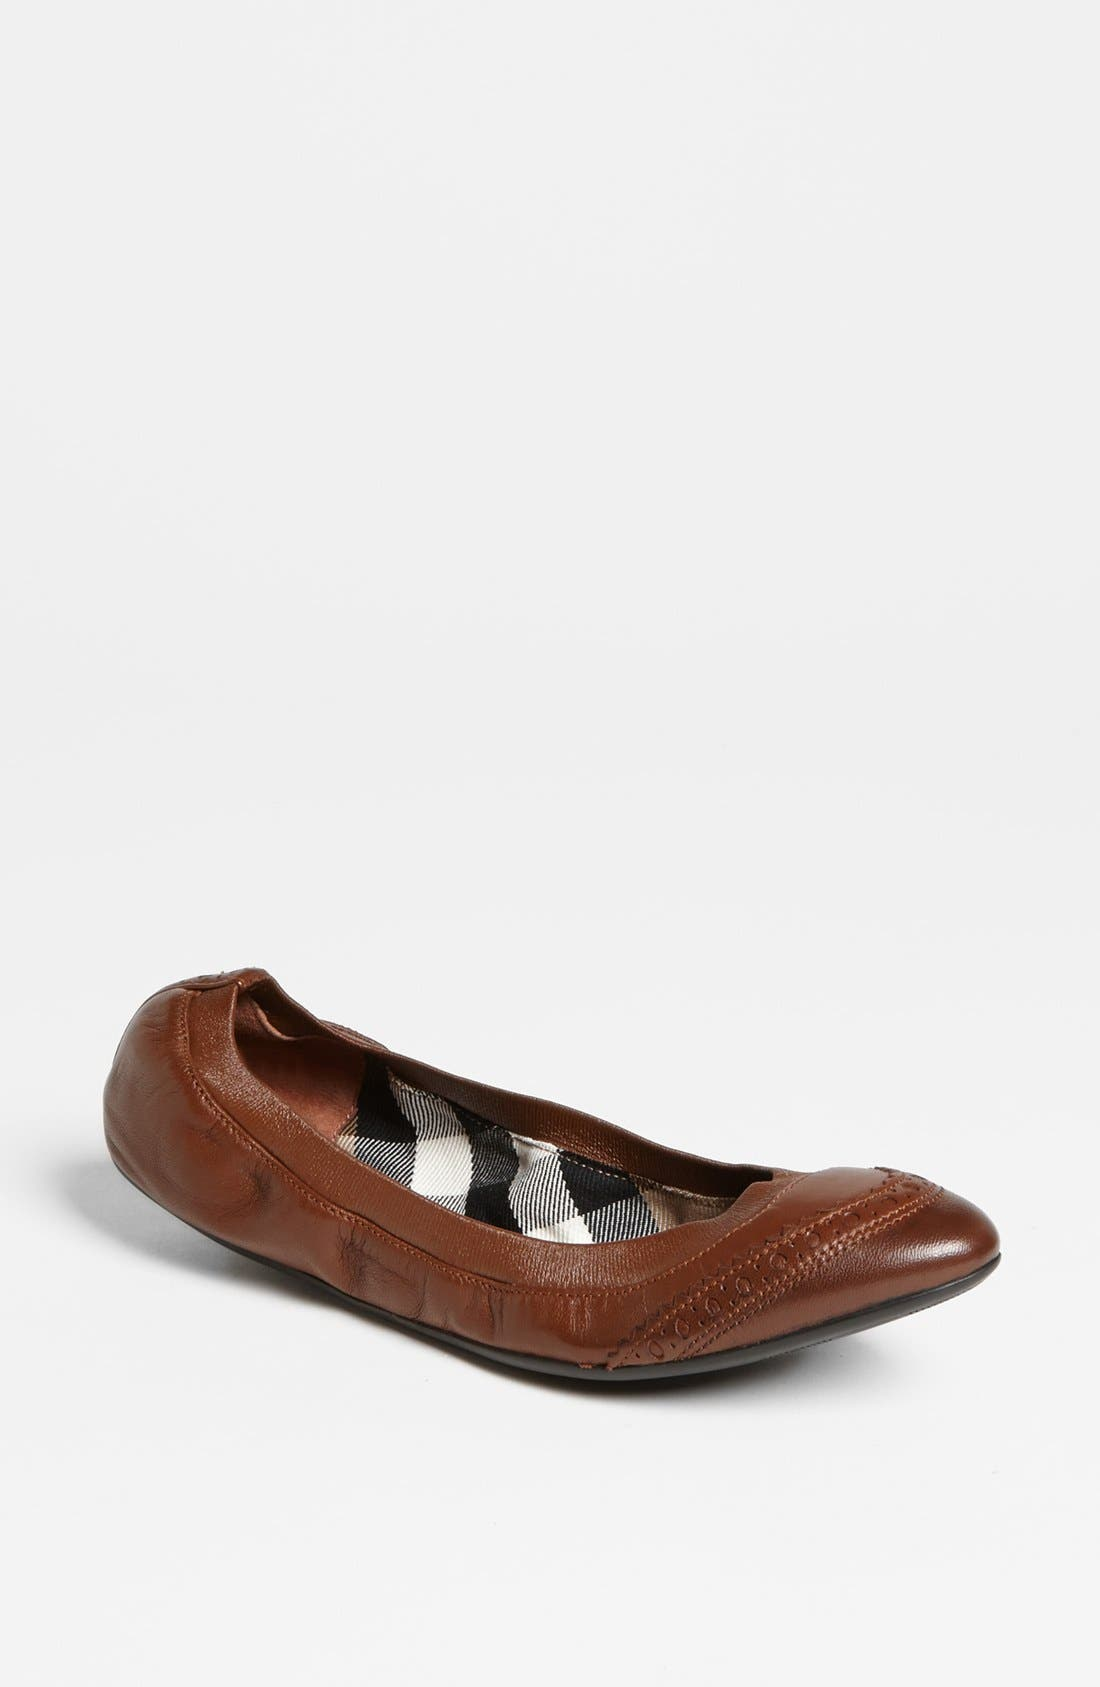 Main Image - Burberry 'Berryfield' Flat (Online Only)